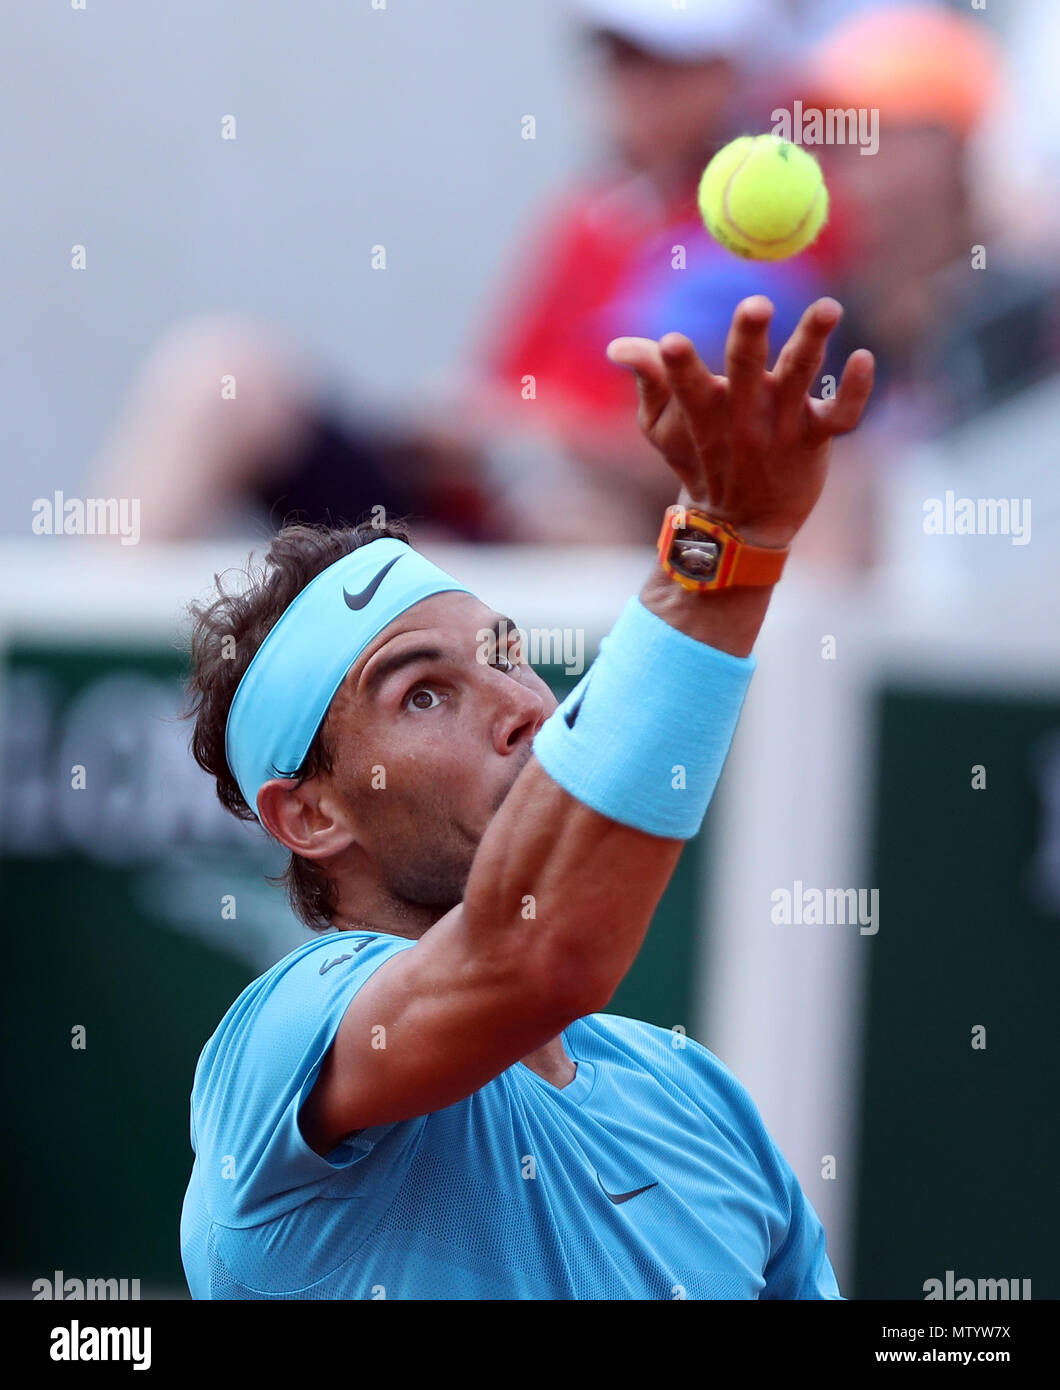 Paris. 31st May, 2018. 1st seeded Rafael Nadal of Spain serves during the men's singles second round match against Guido Pella of Argentina at the French Open Tennis Tournament 2018 in Paris, France on May 31, 2018. Credit: Luo Huanhuan/Xinhua/Alamy Live News Stock Photo